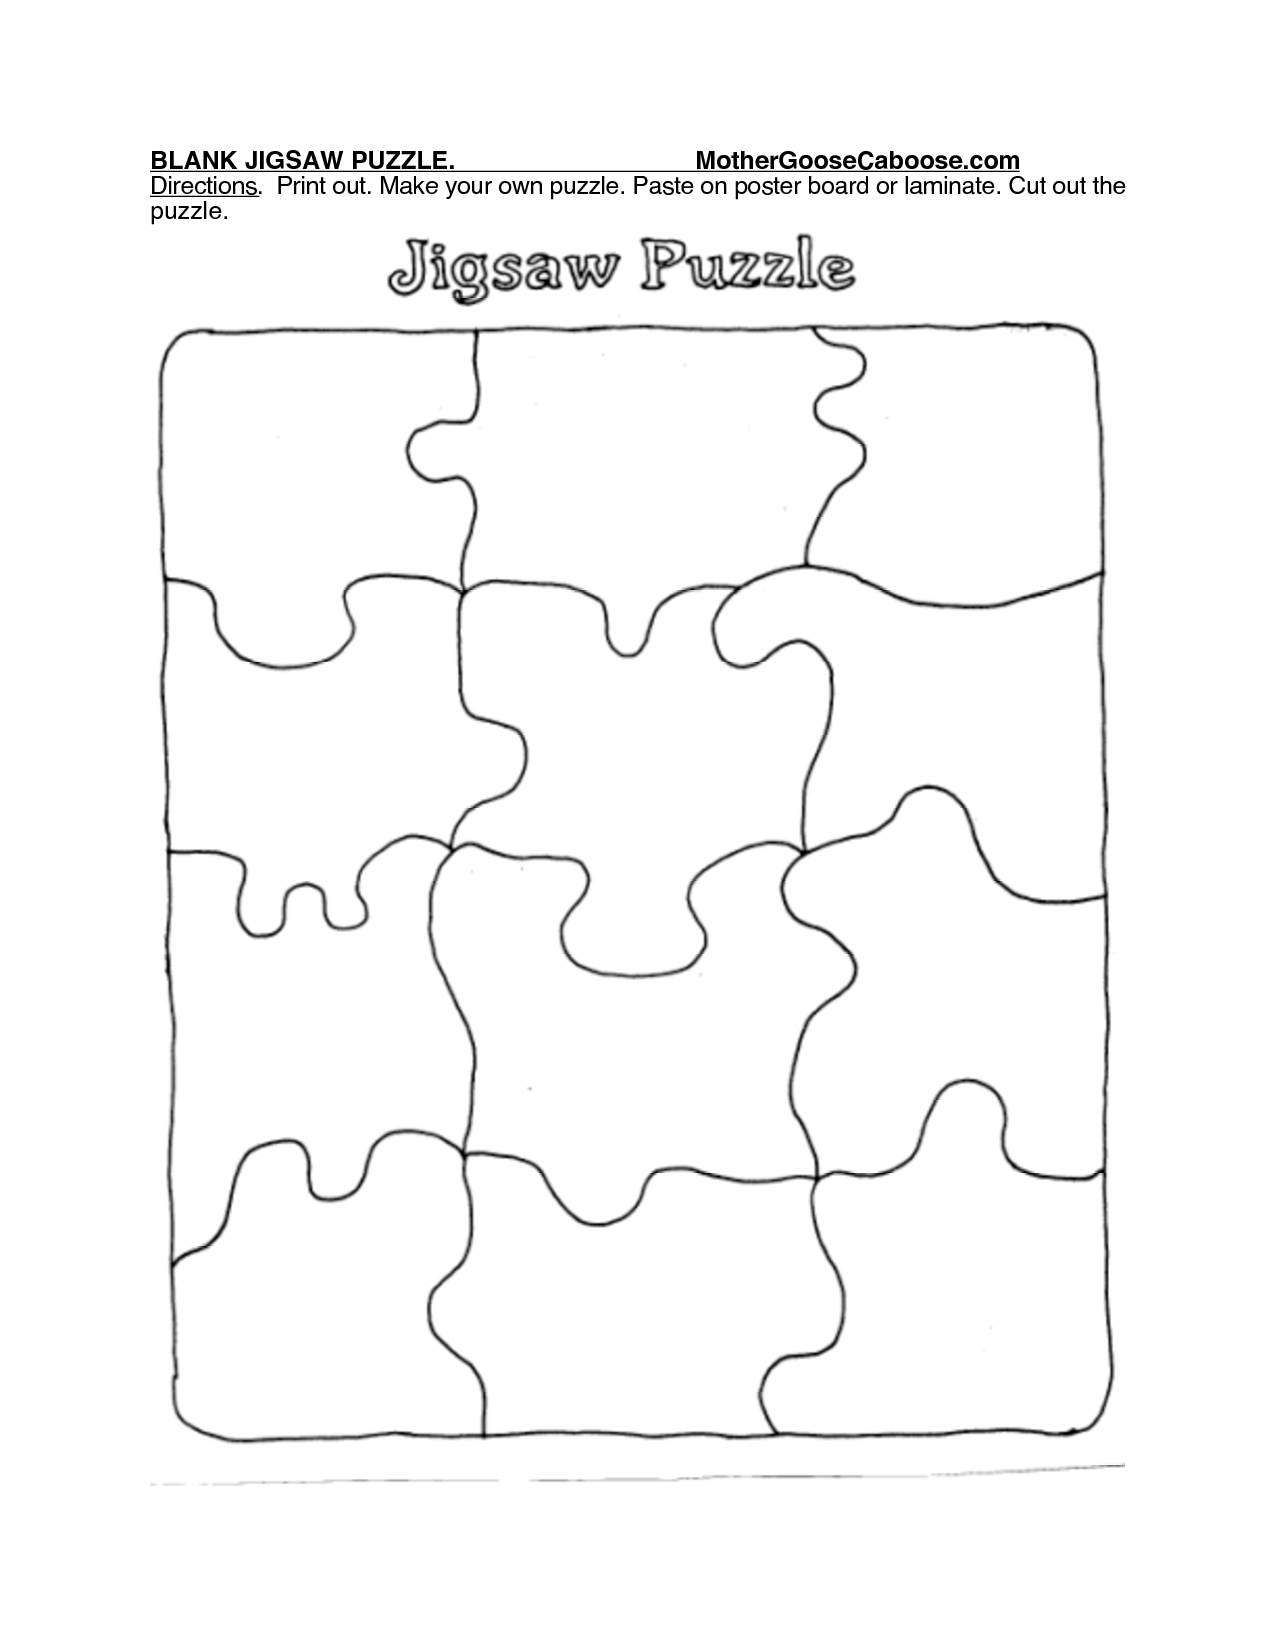 Blank Jigsaw Puzzle. Mothergoosecaboose Directions. Print Out - Print Jigsaw Puzzle